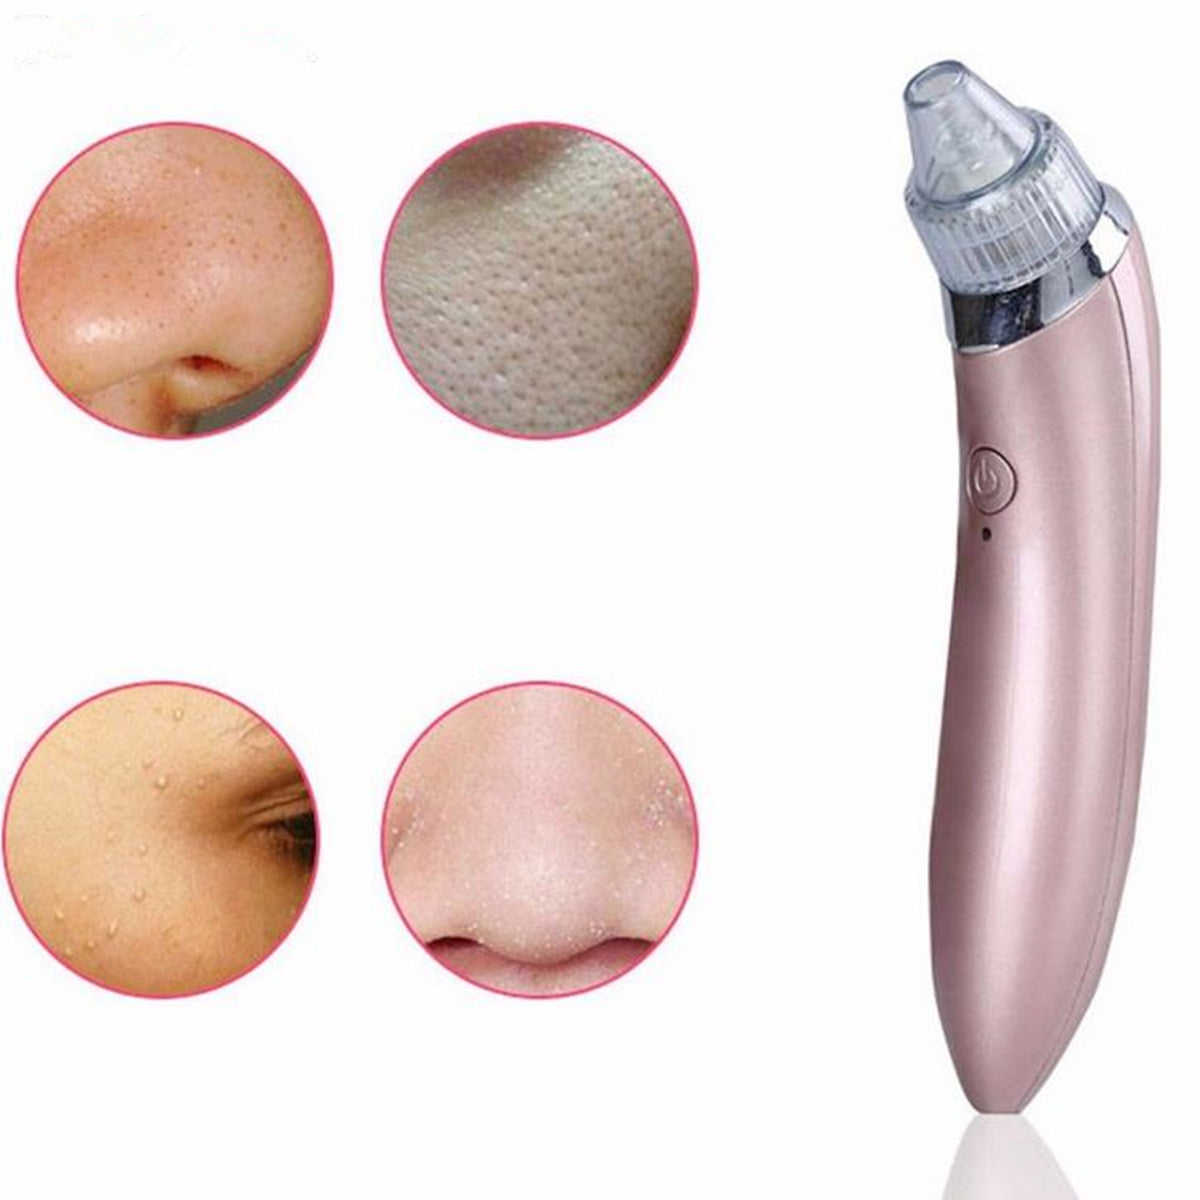 cozyrex,Electric Blackhead Suction Tool Pore Cleanser Vacuum Device,CozyRex,